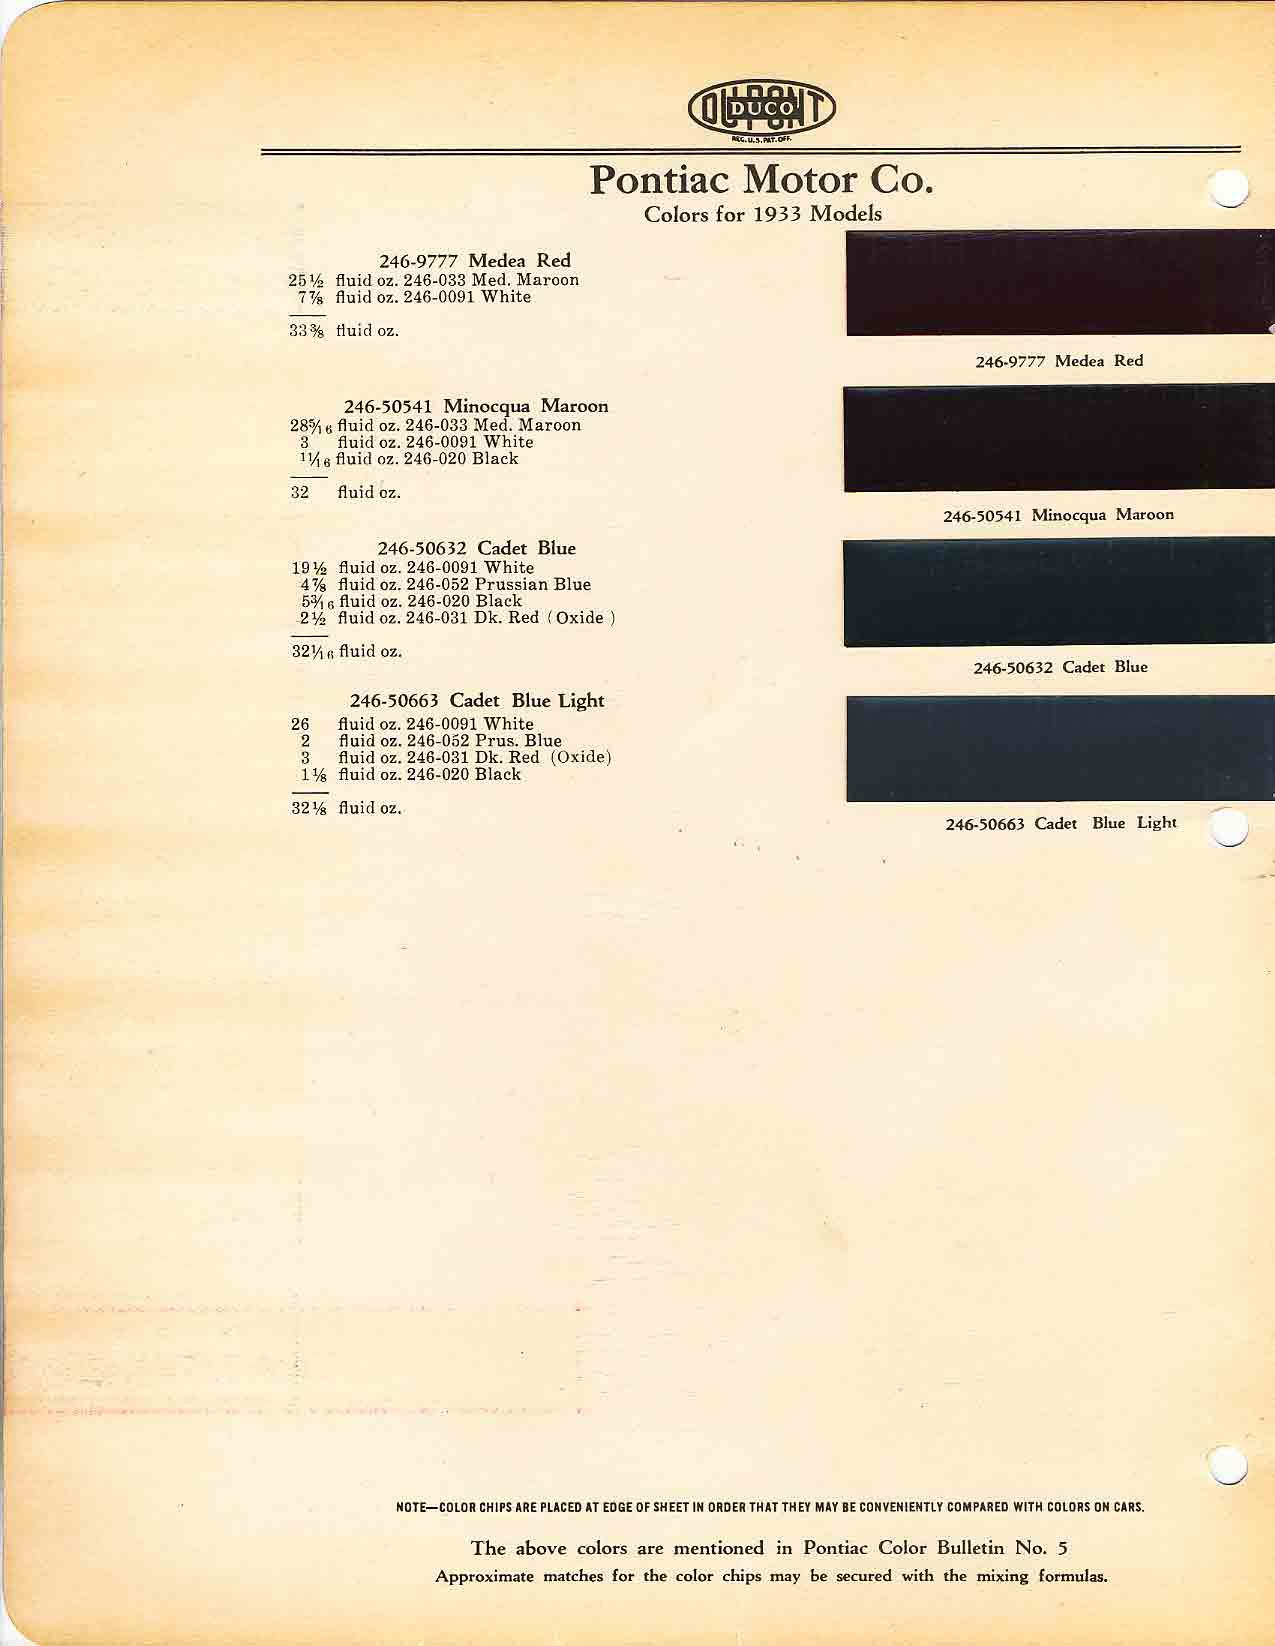 Color Code and Paint Color Chart for Pontiac for 1933